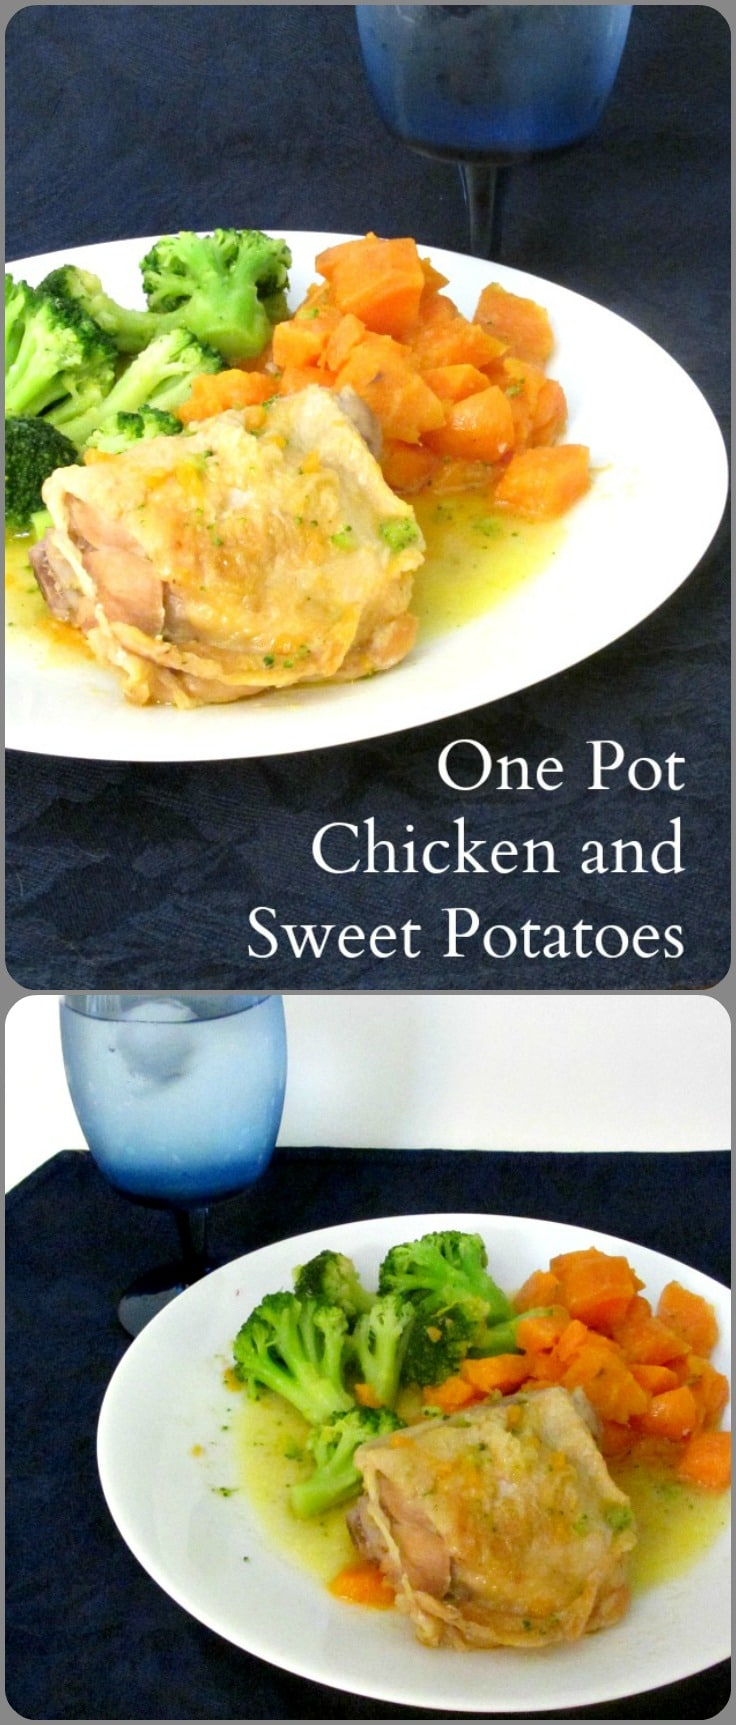 Make this fast one pot meal of chicken, sweet potatoes and vegetables! A delicious easy dinner!